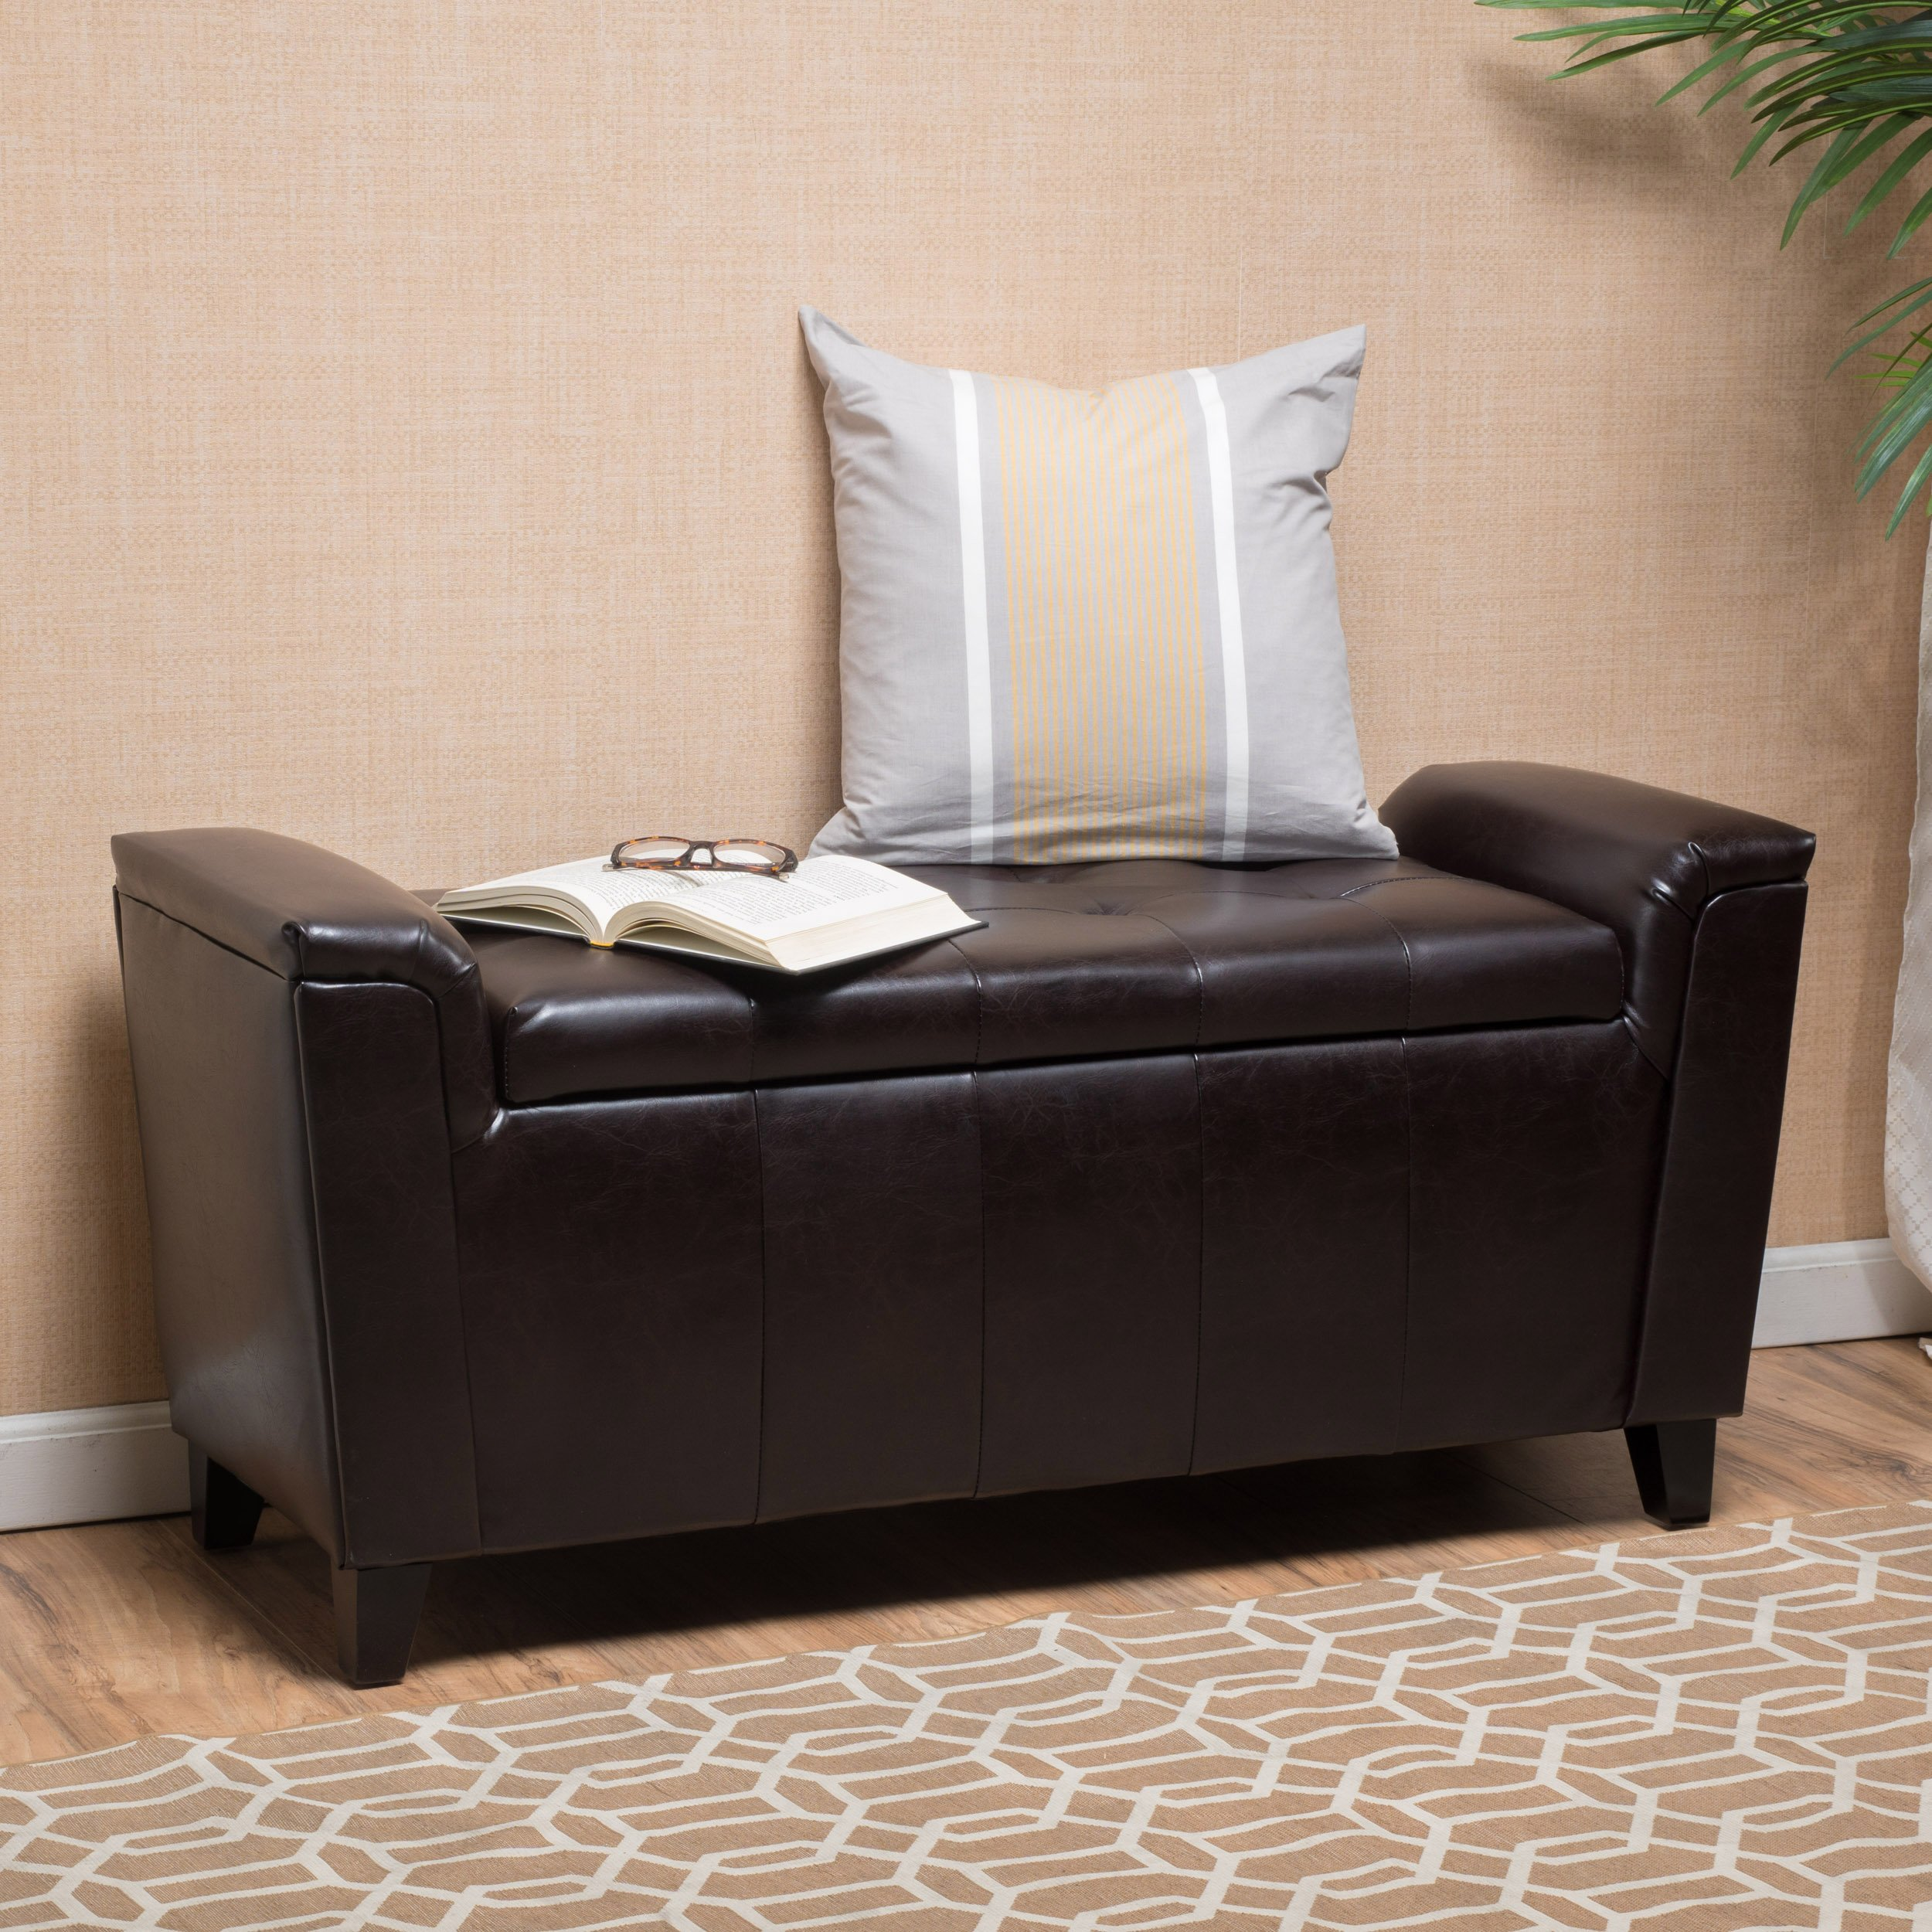 James Brown Tufted Leather Armed Storage Ottoman Bench